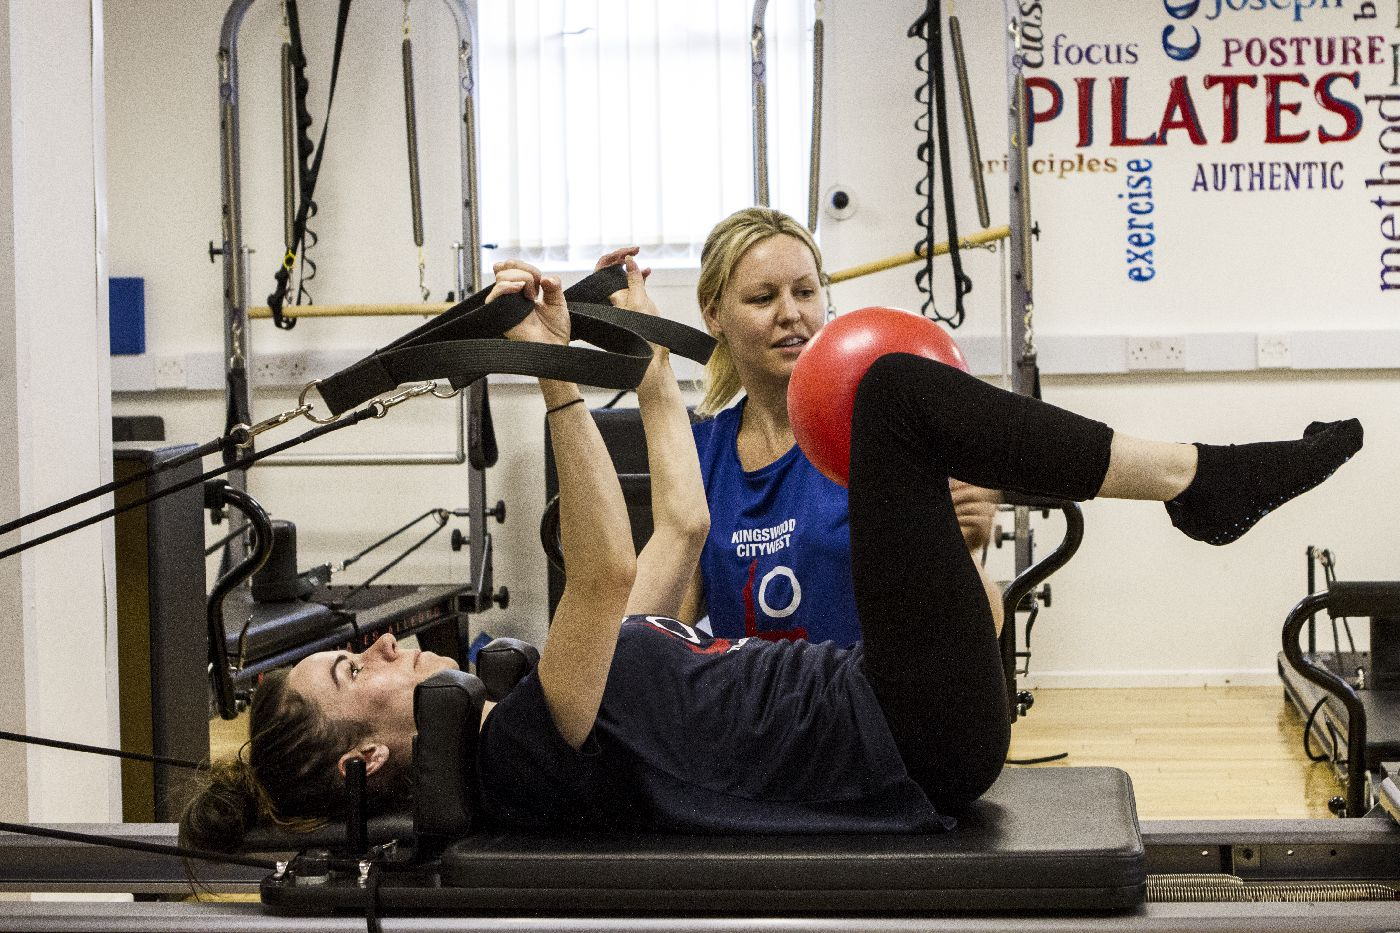 Louise O'Rourke Physiotherapy - Physio Led - One to One Reformer Pilates - Citywest Dublin